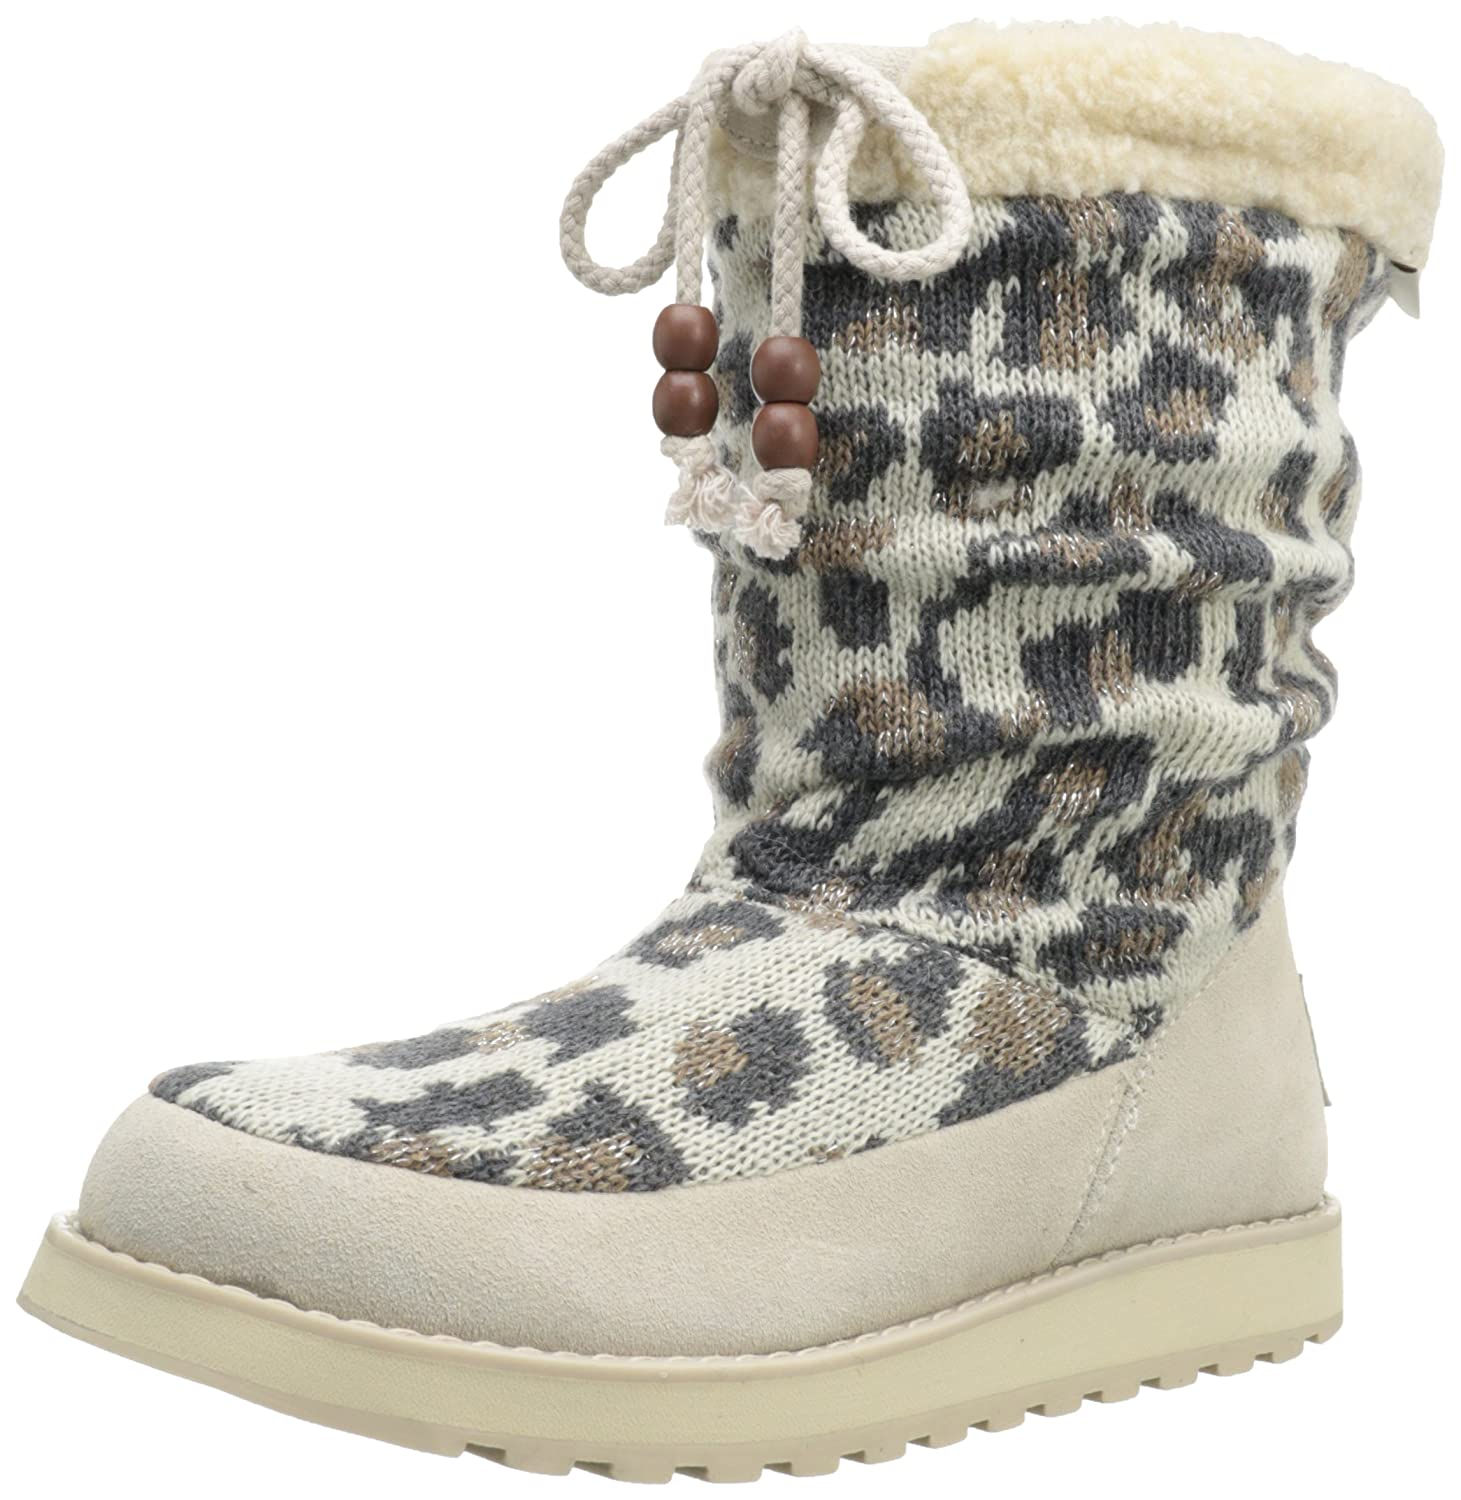 Skechers Keepsakes-Tier Knit Schneestiefel  36 EU|Natural